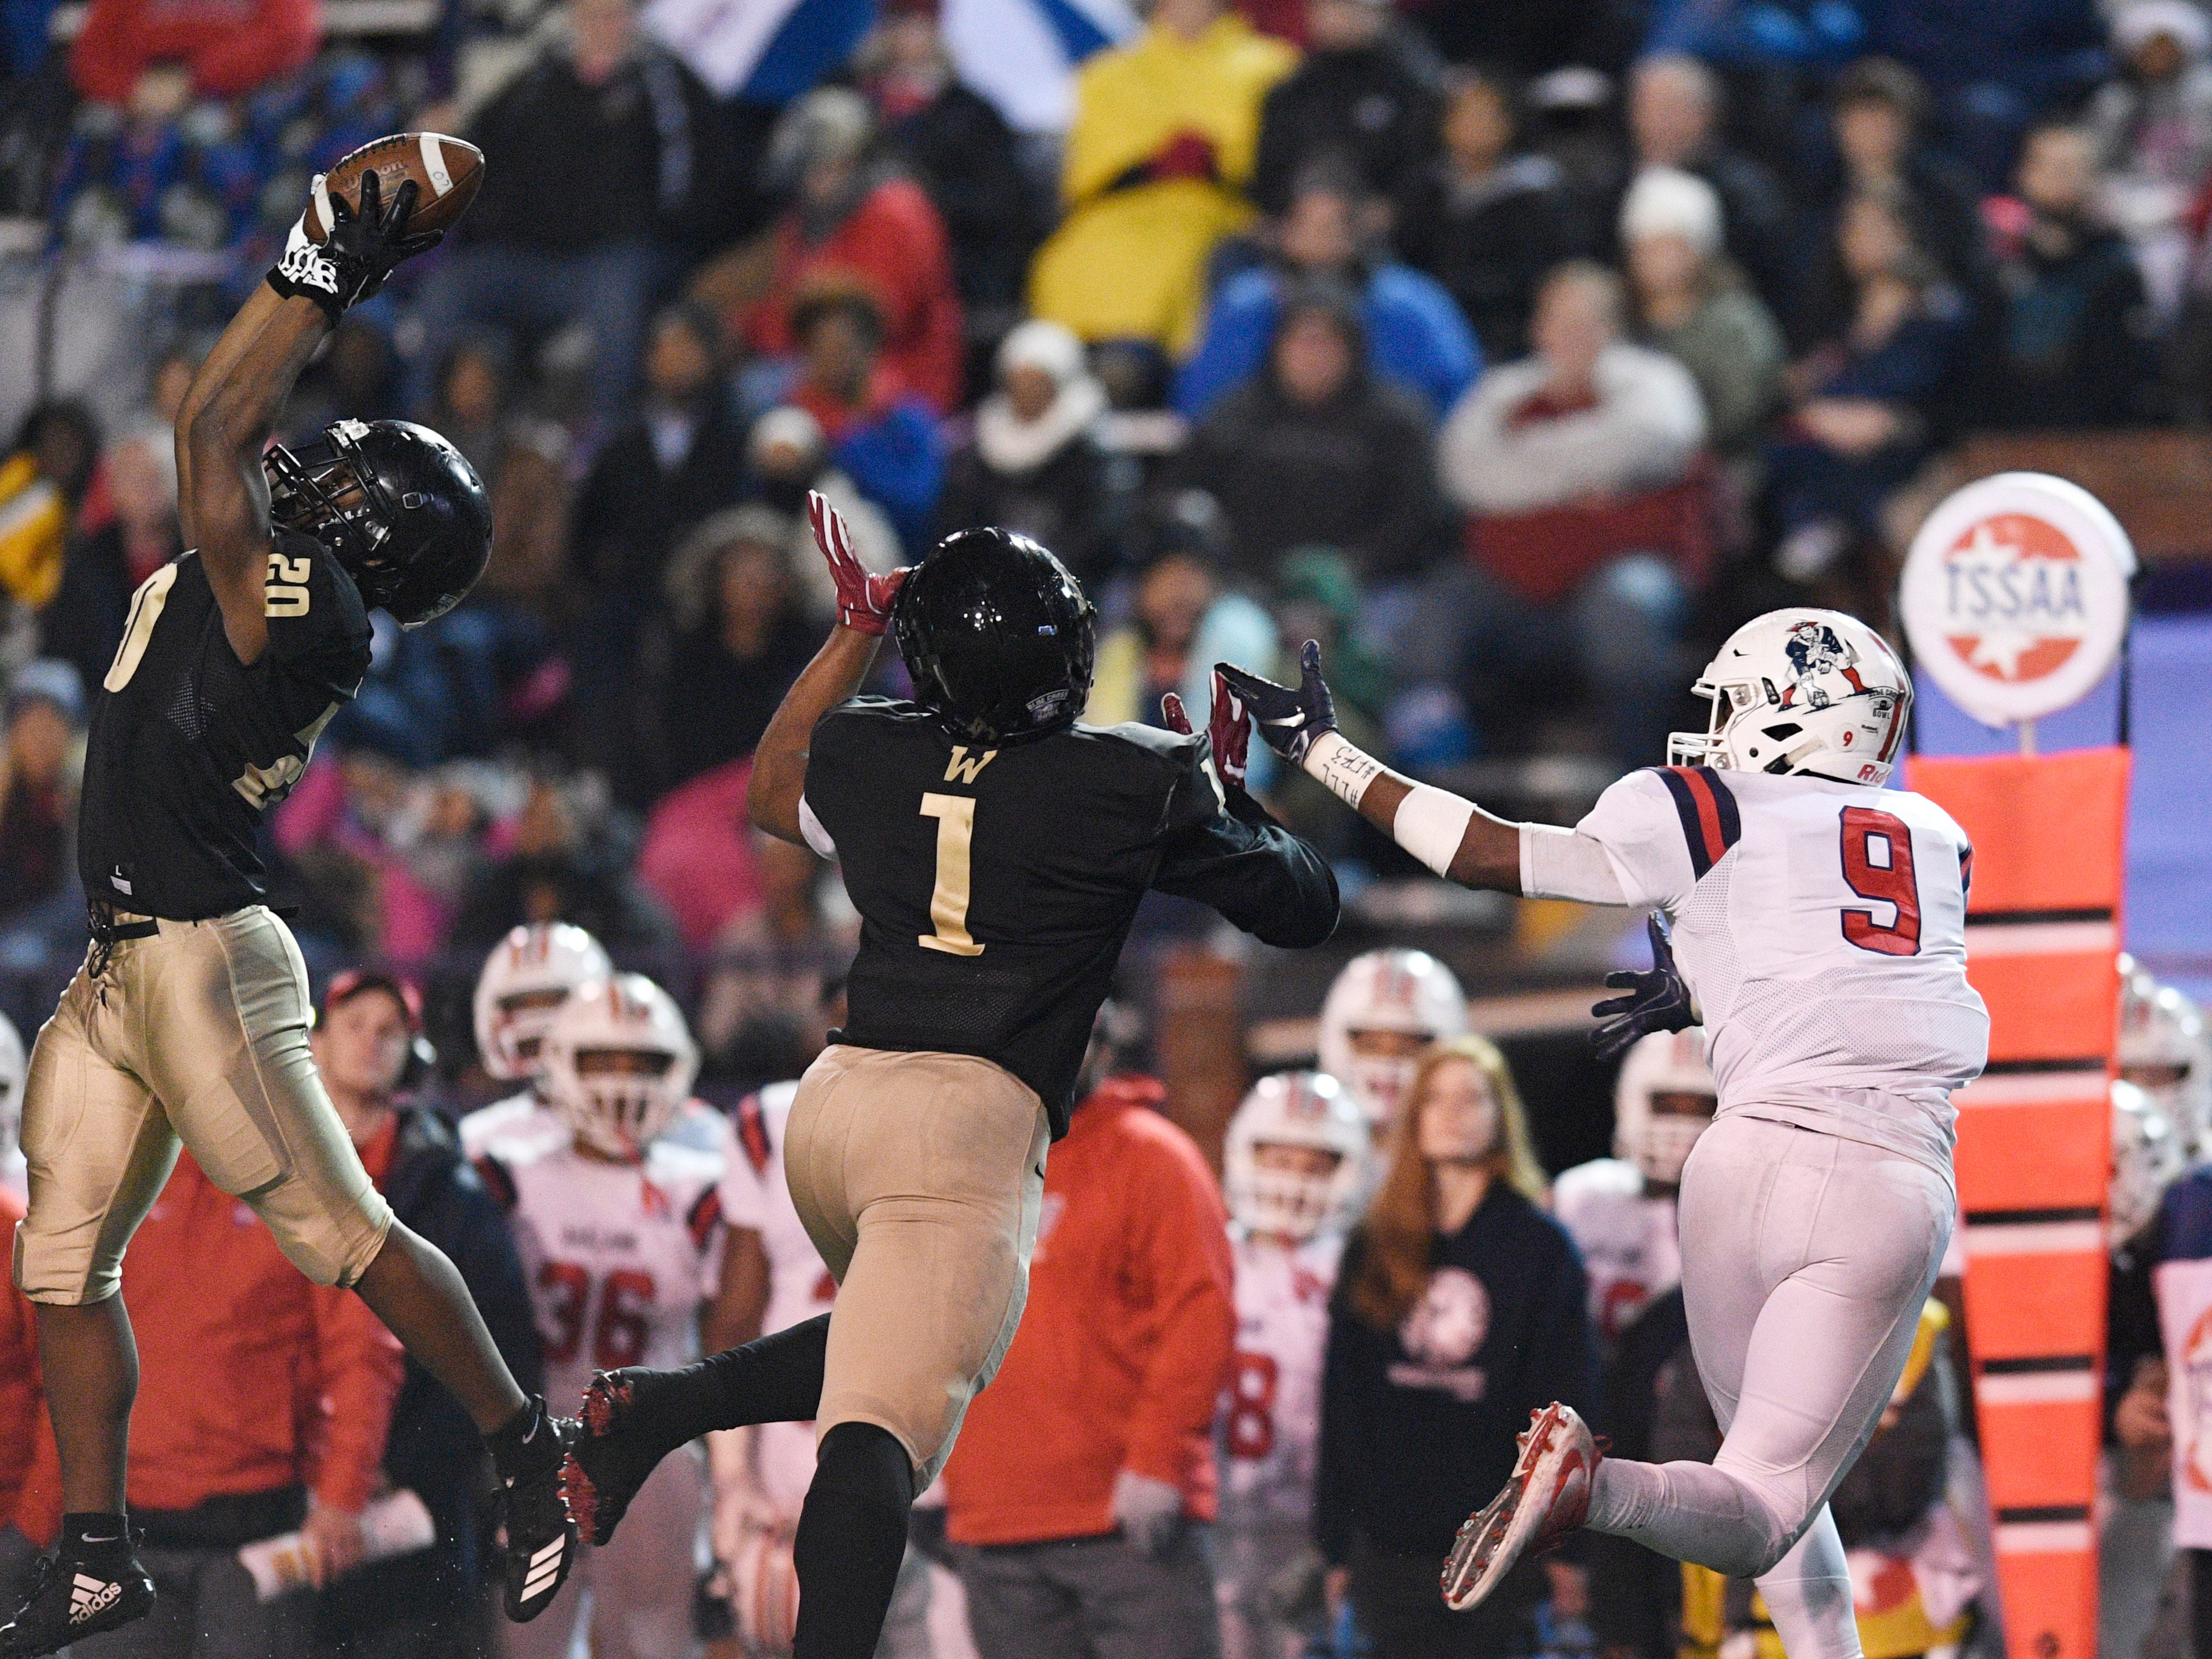 Whitehaven Jamal Frazier (20) goes up high for an interception in the second half in front of Whitehaven's Bryson Eason (1)  and Oakland's Tekoy Randolph (9) at the Class 6A BlueCross Bowl state championship at Tennessee Tech's Tucker Stadium in Cookeville, Tenn., on Thursday, Nov. 29, 2018.